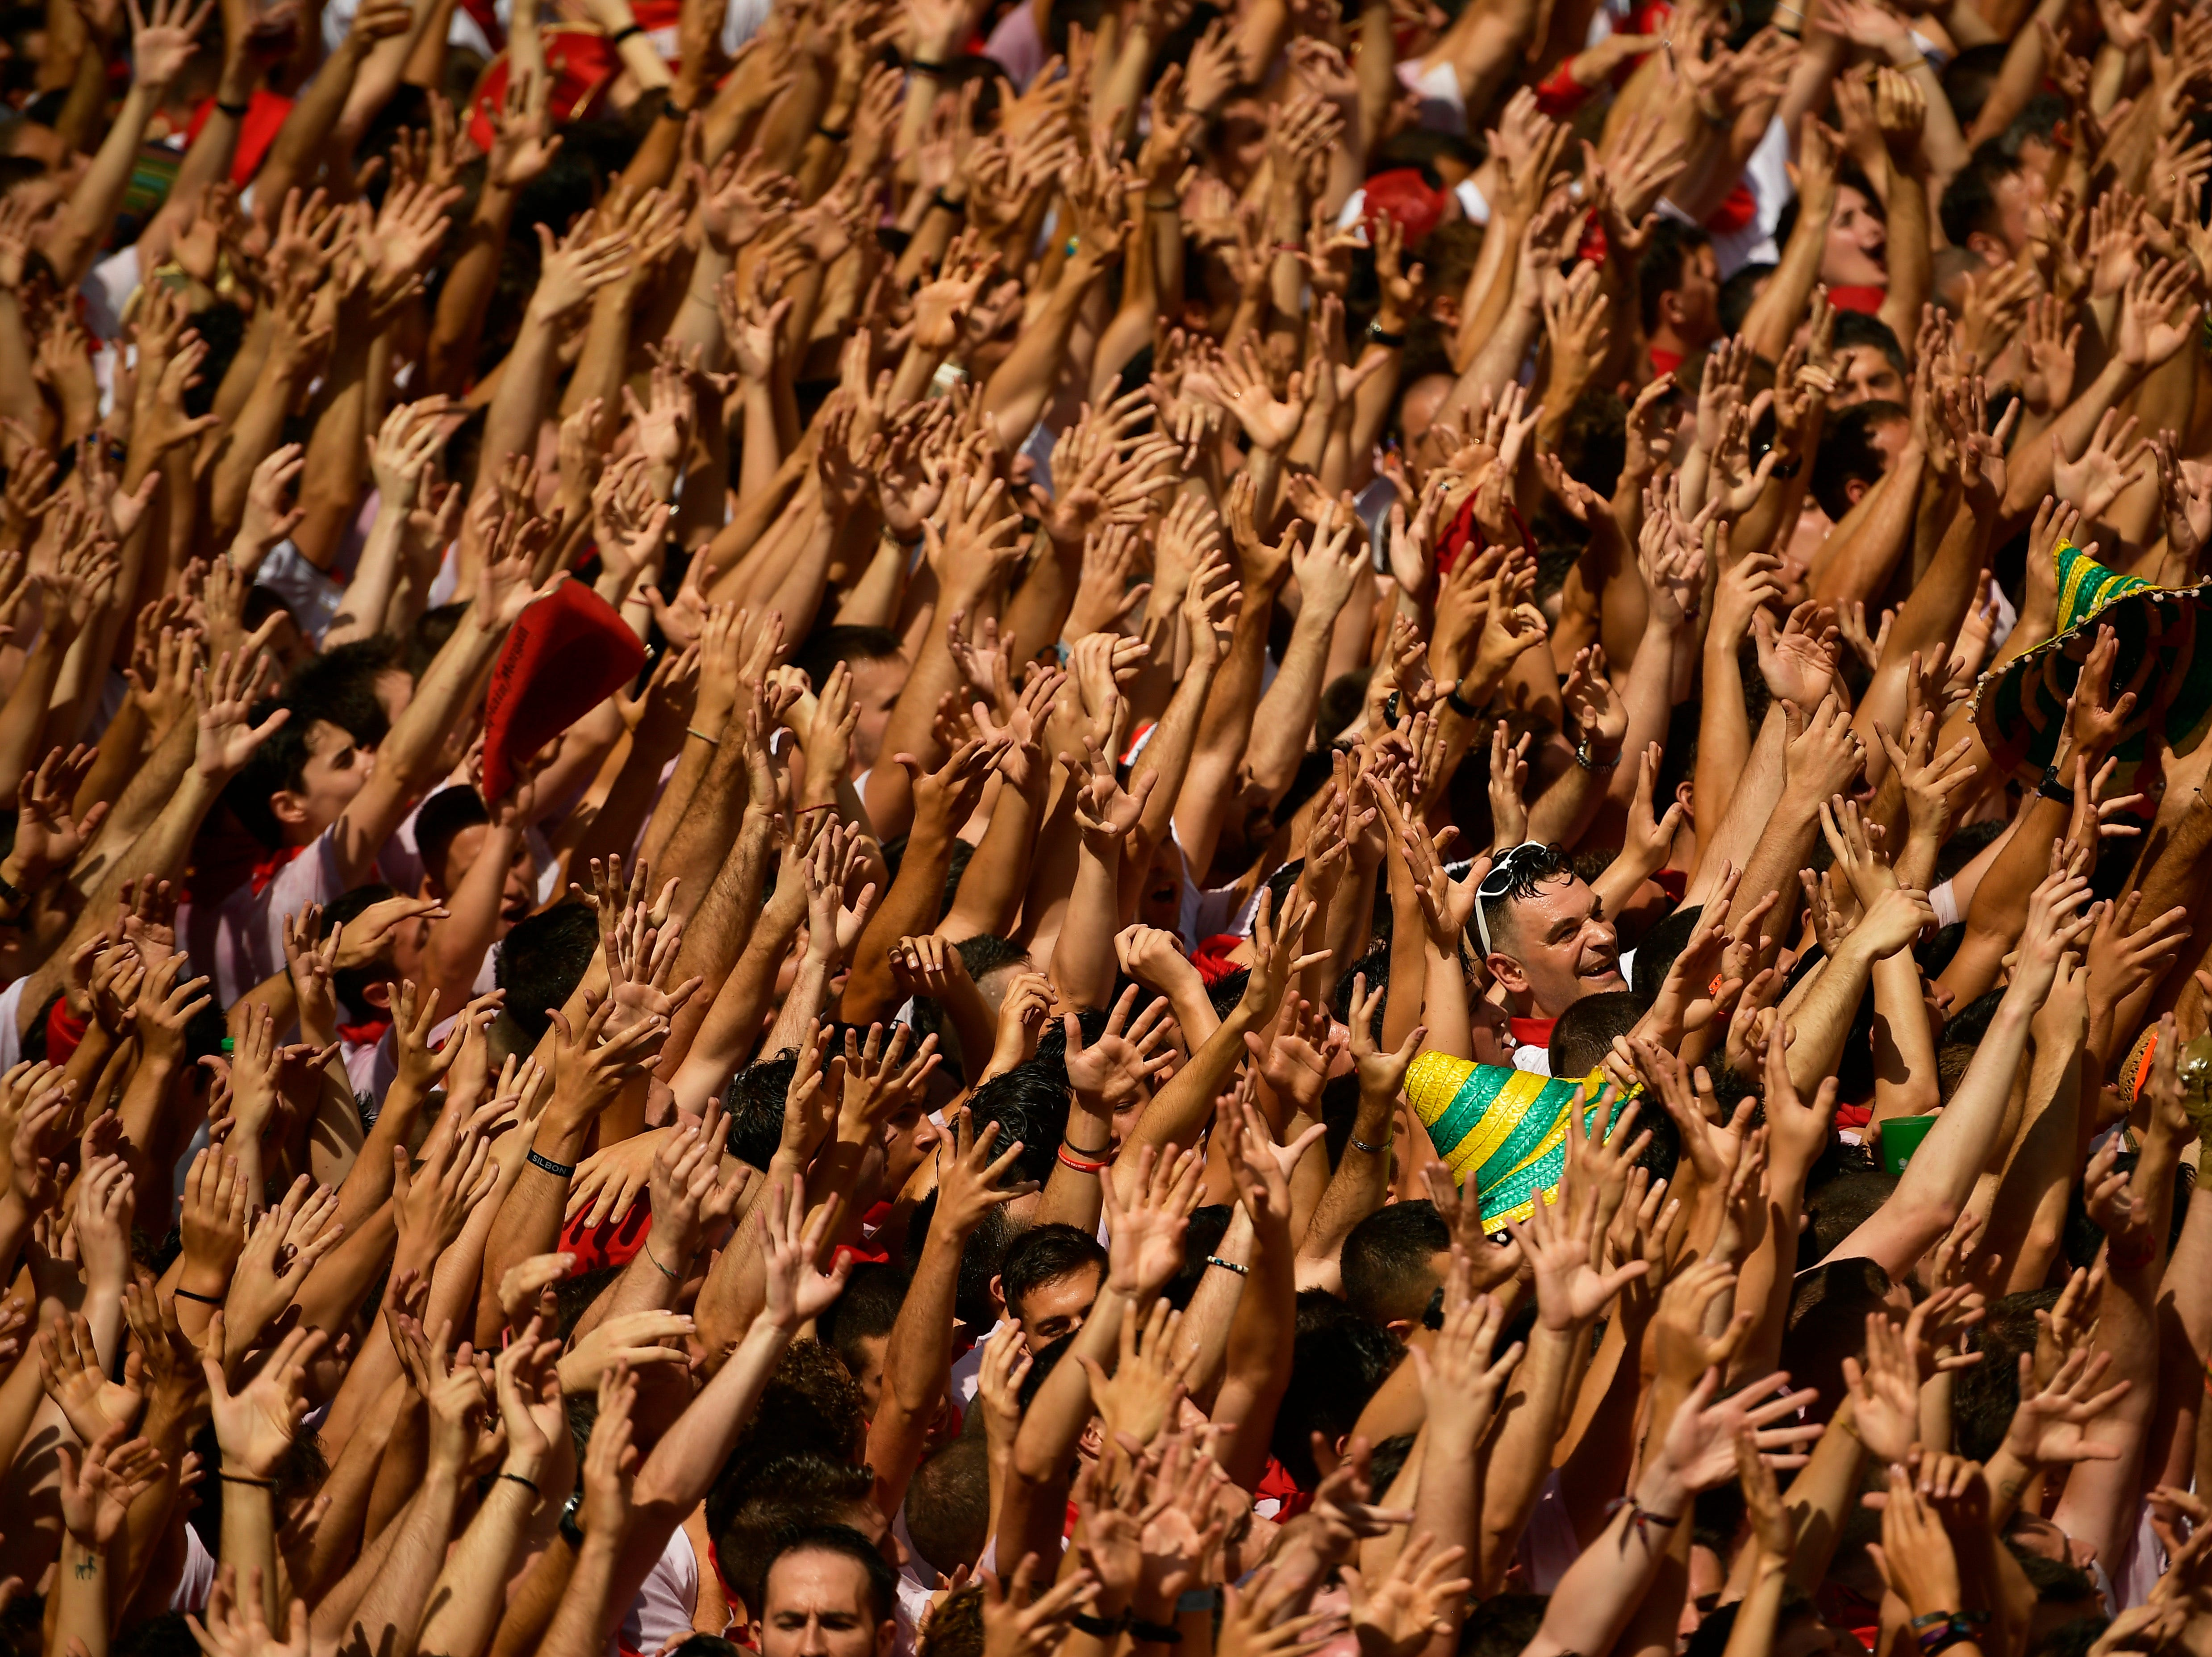 July 6, 2018: Revellers hold their arms up during the launch of the 'Chupinazo' rocket, to celebrate the official opening of the 2018 San Fermin fiestas with daily bull runs, bullfights, music and dancing in Pamplona, Spain.